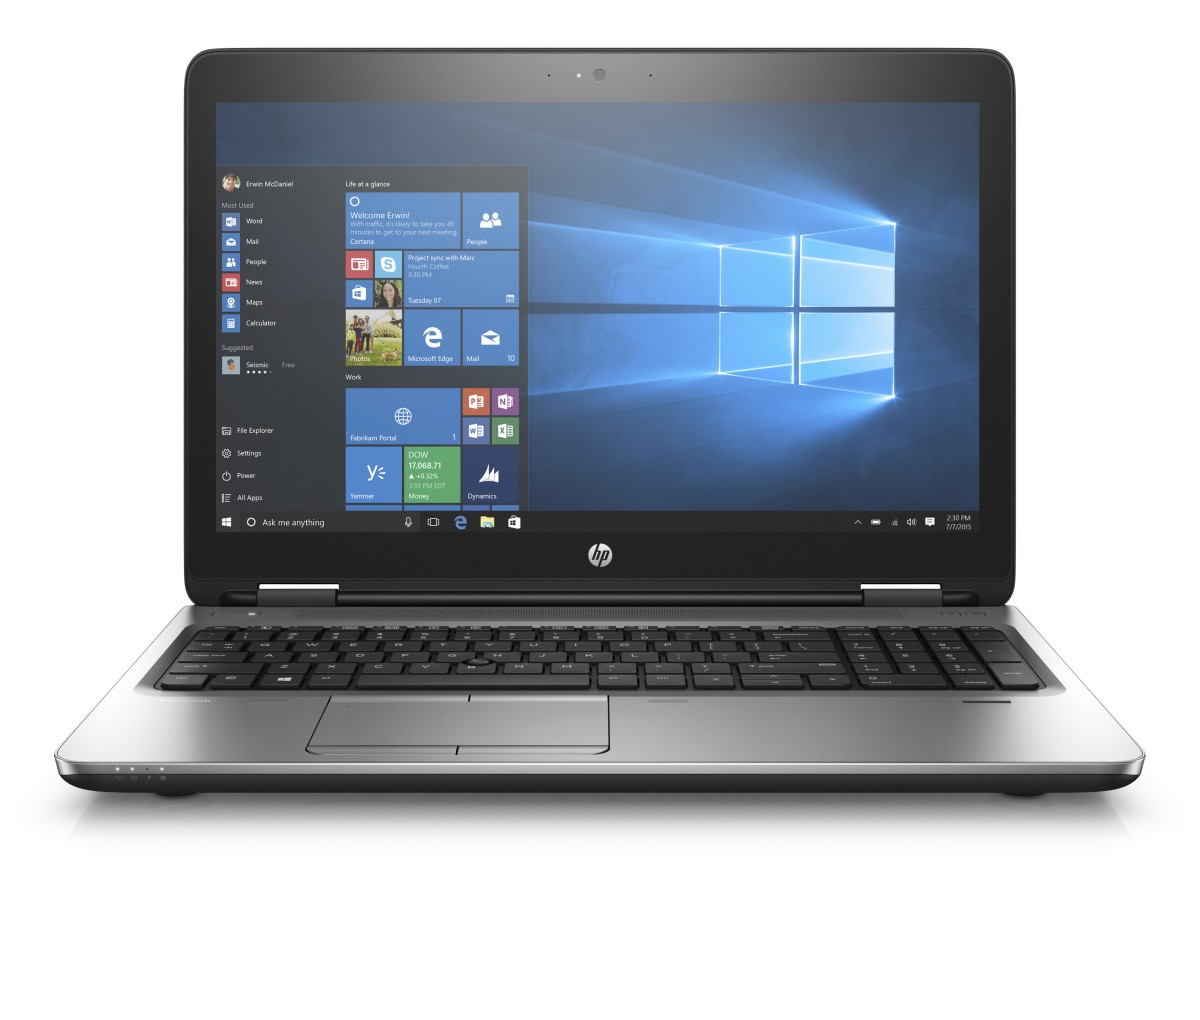 HP ProBook 650 G3 i5-7200U 15.6 FHD CAM, 8GB, 256GB TurboG2, DVDRW, ac, BT, FpR, no backlit keyb, serial port, Win10Pro